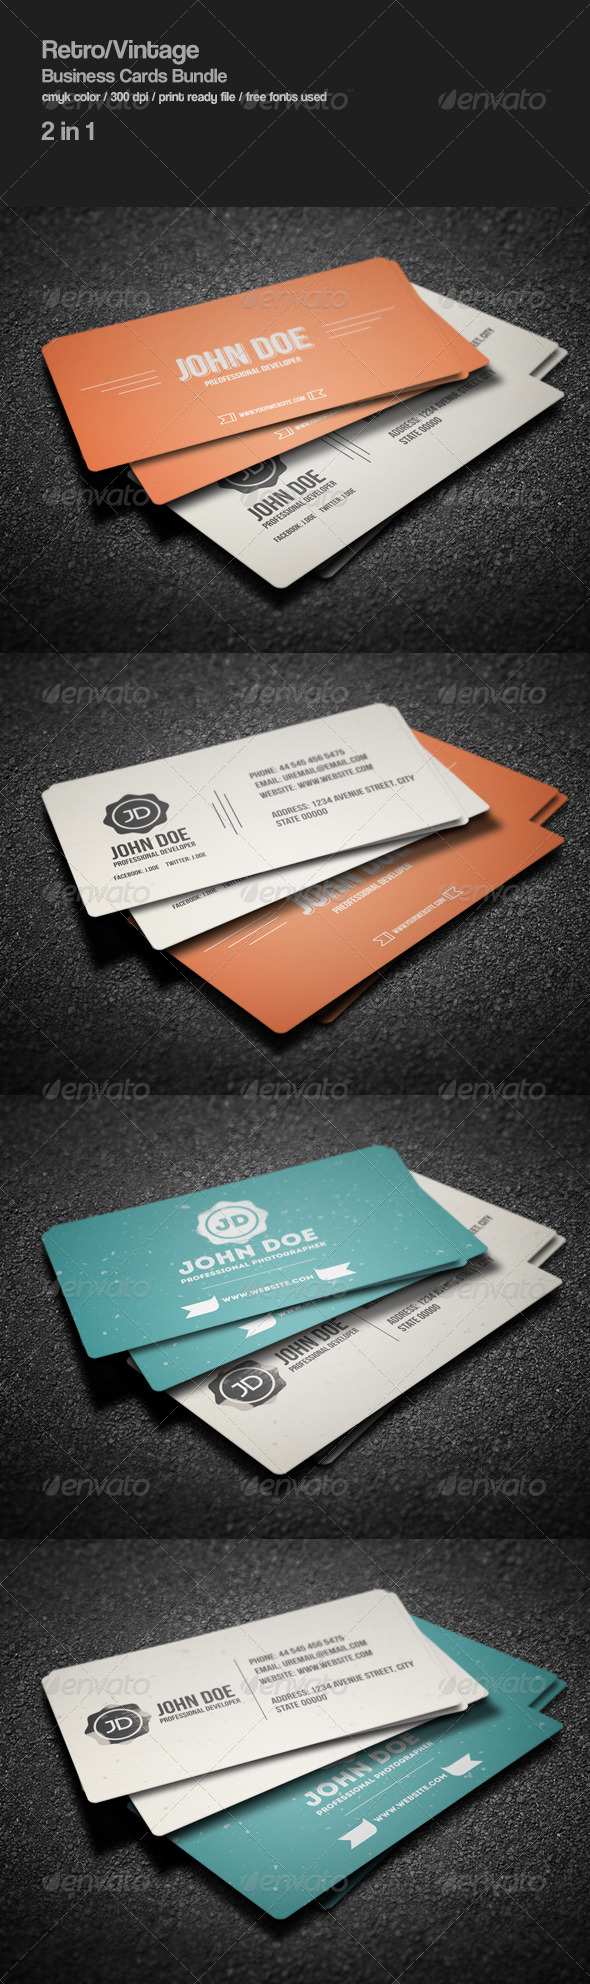 GraphicRiver Retro Business Cards Bundle 8638612